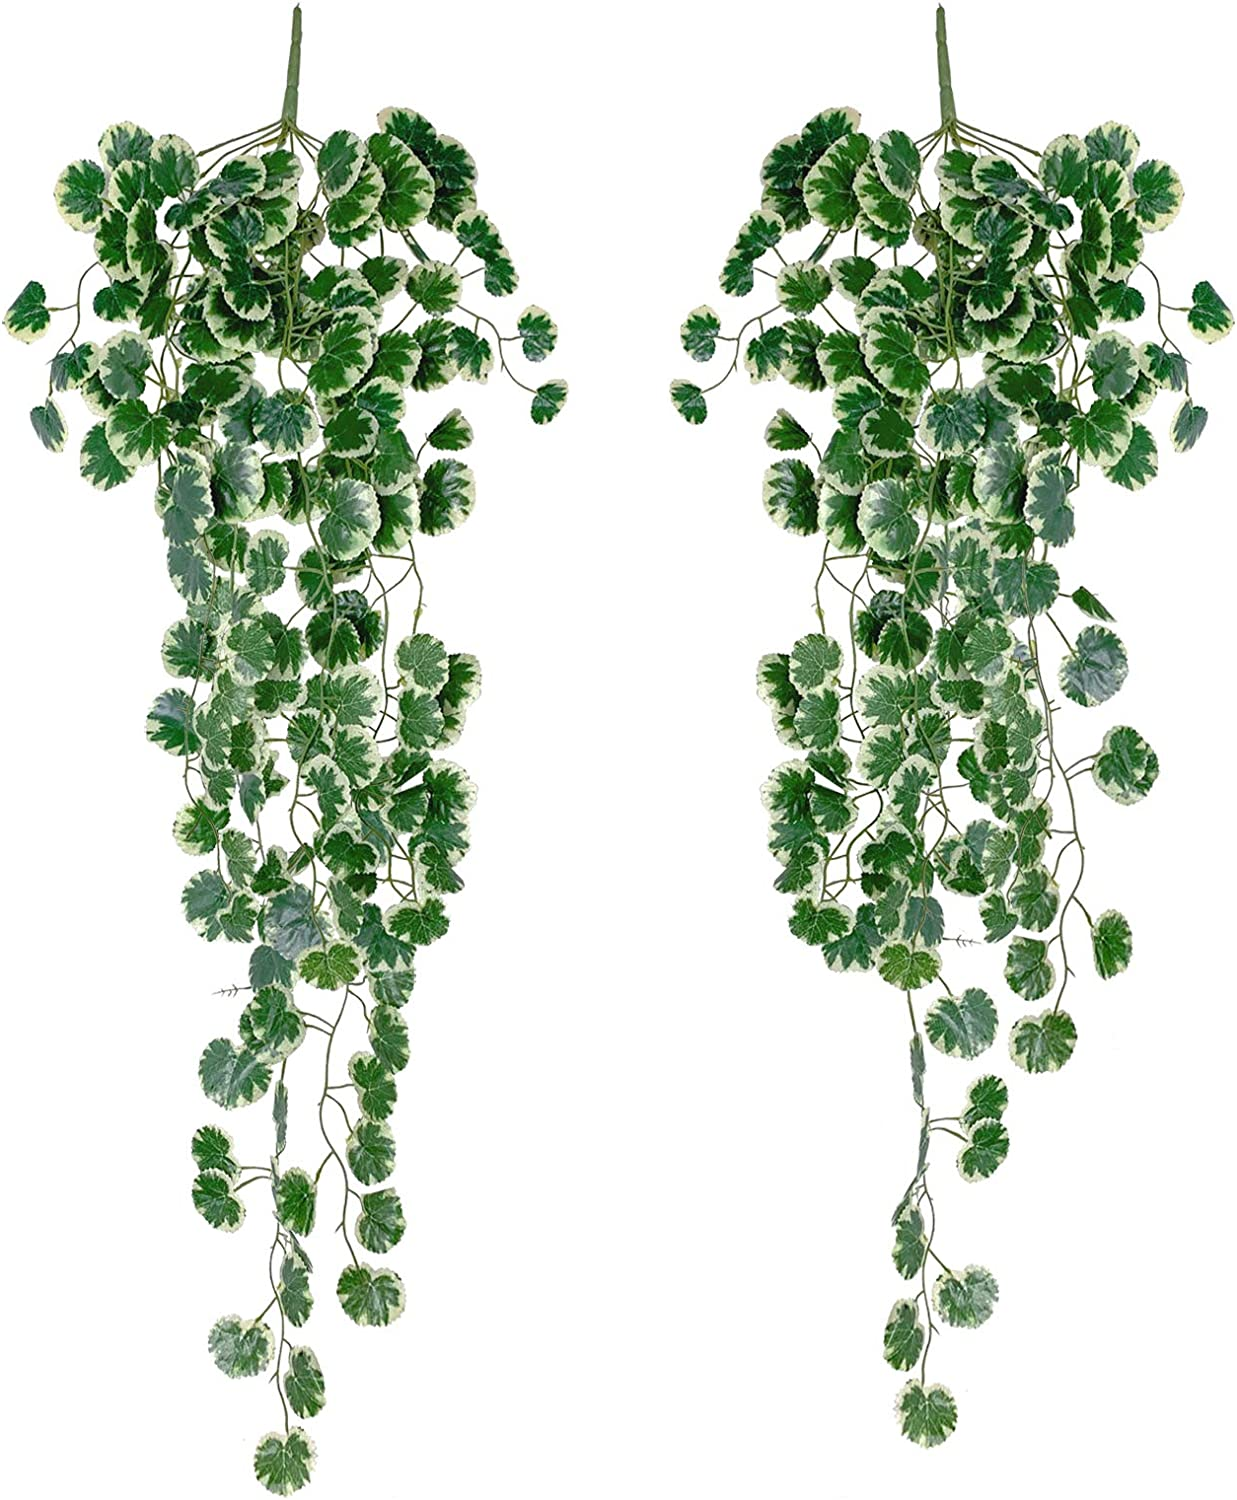 Yatim 90 cm White Crabapple Ivy Vine Artificial Plants Greeny Chain Wall Hanging Leaves for Home Room Garden Wedding Garland Outside Decoration Pack of 2